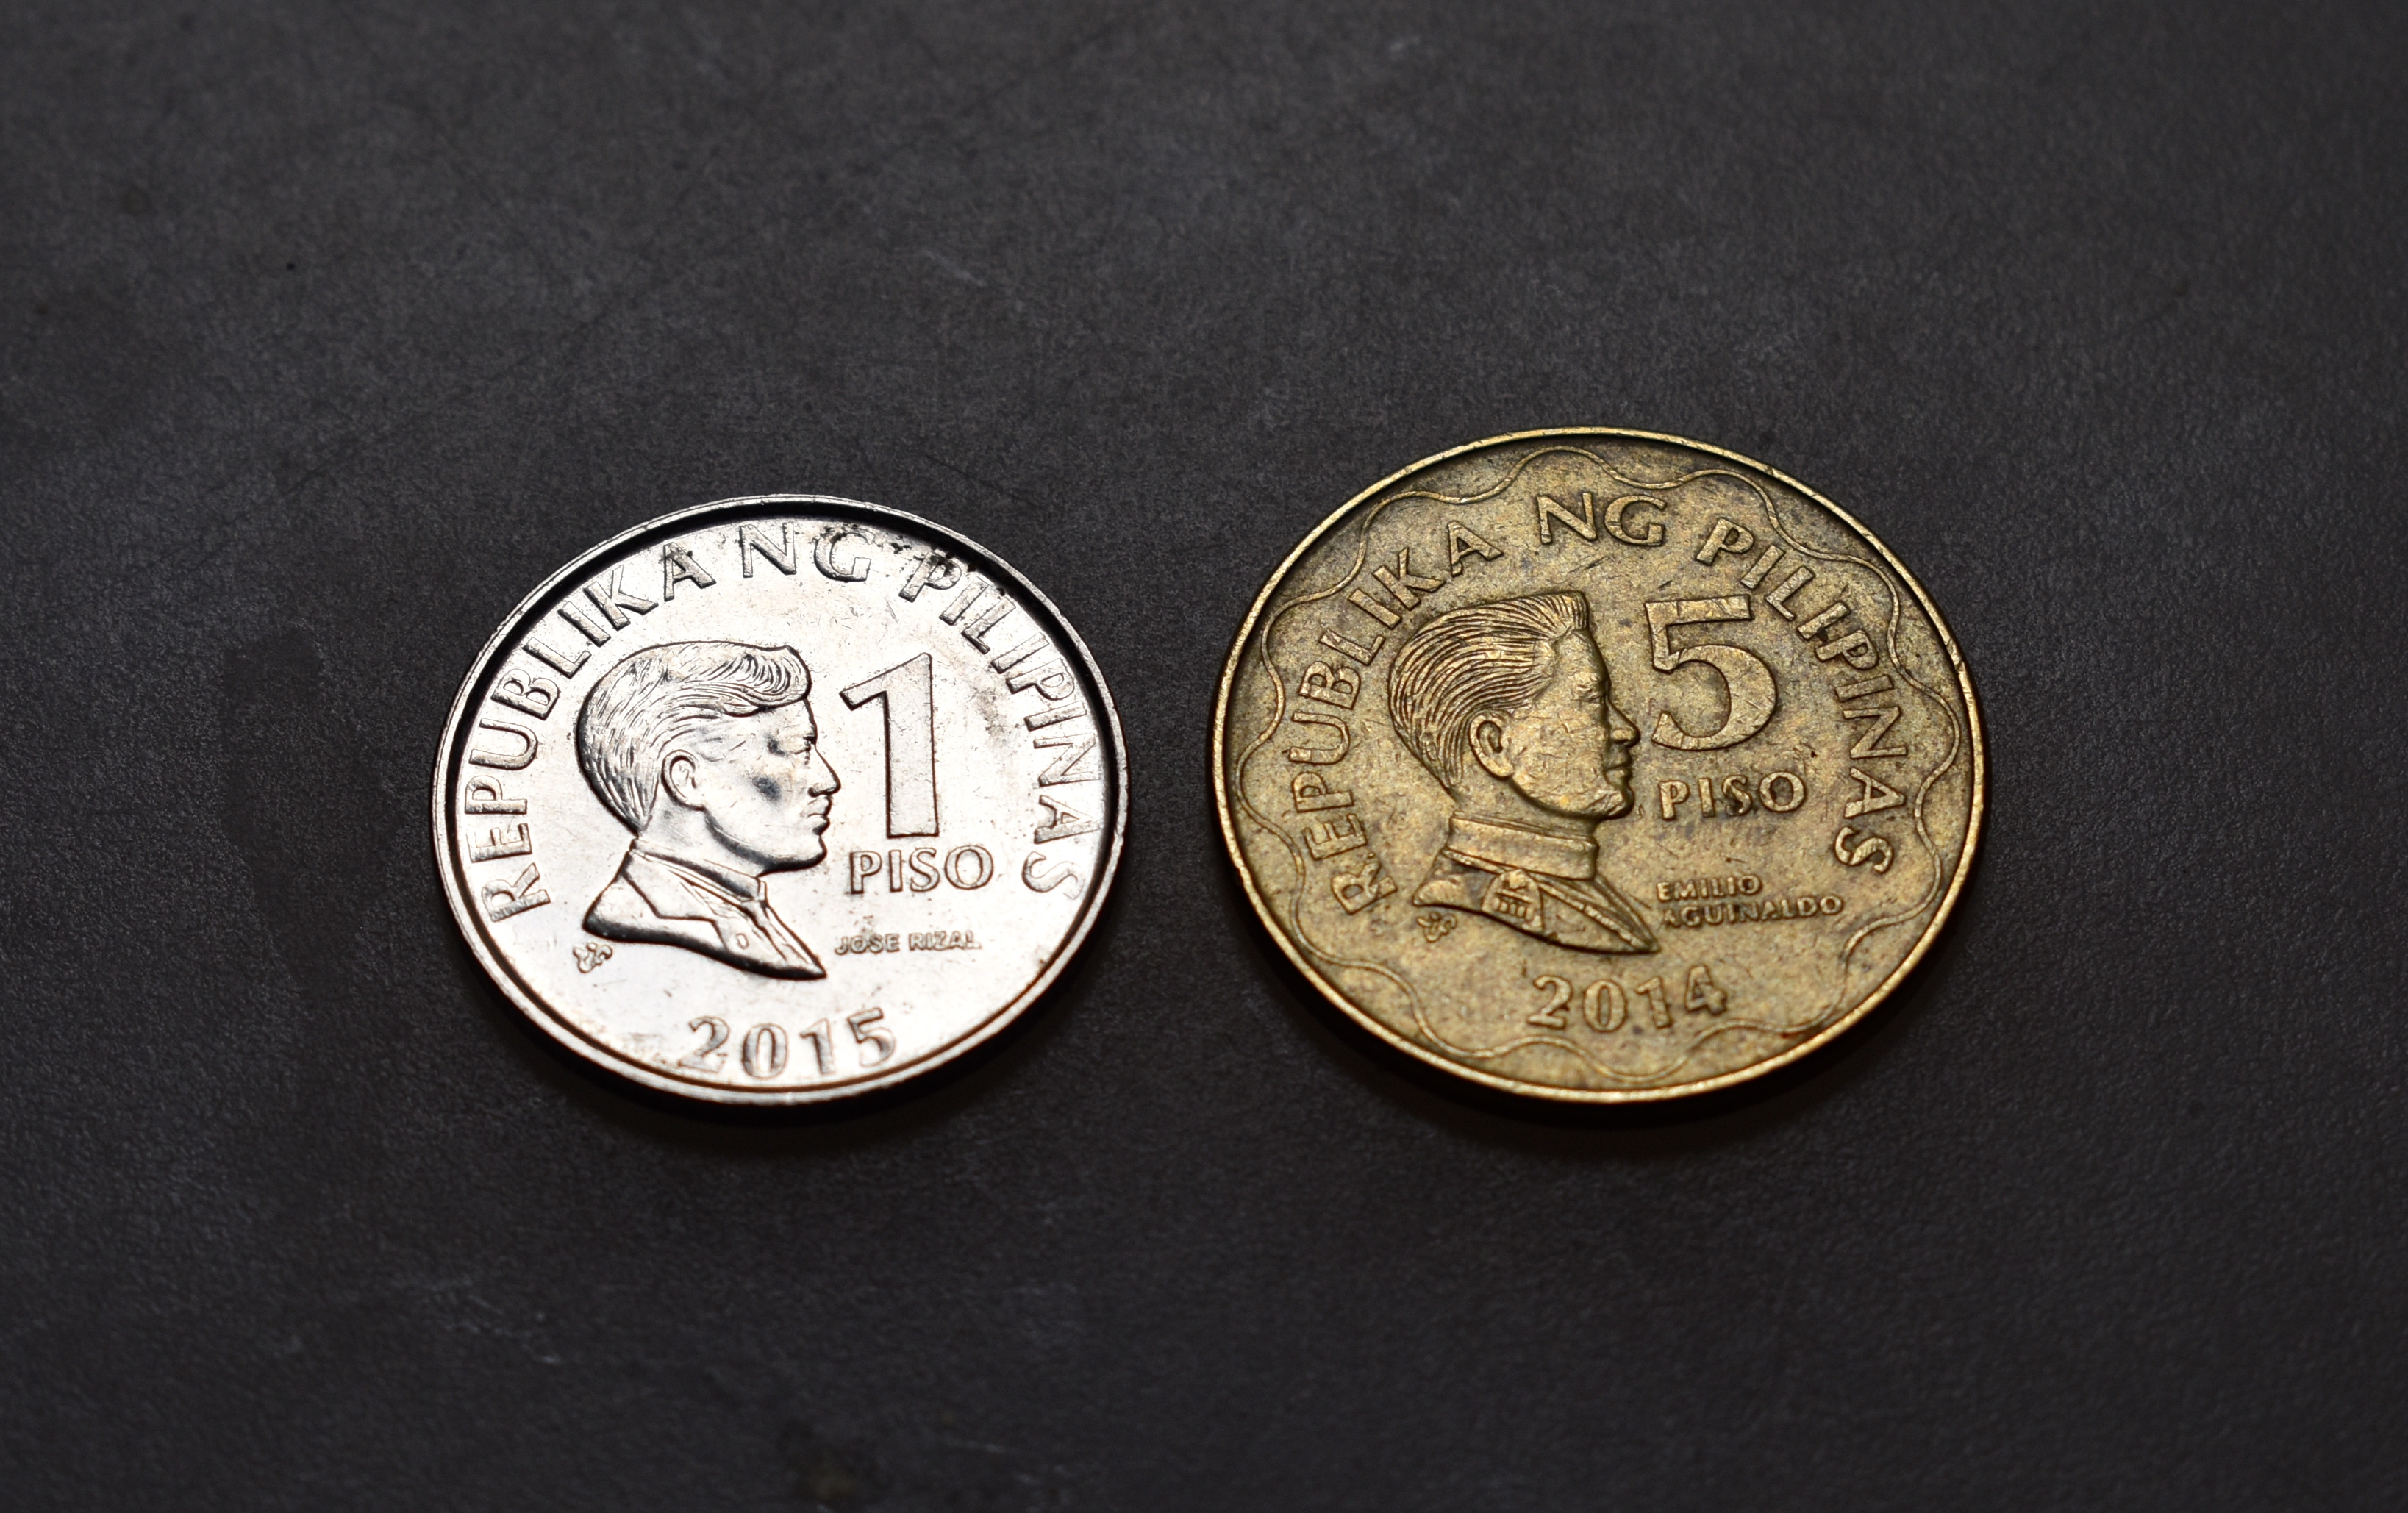 New 5 Peso Andres Bonifacio Coin Designed To Confuse